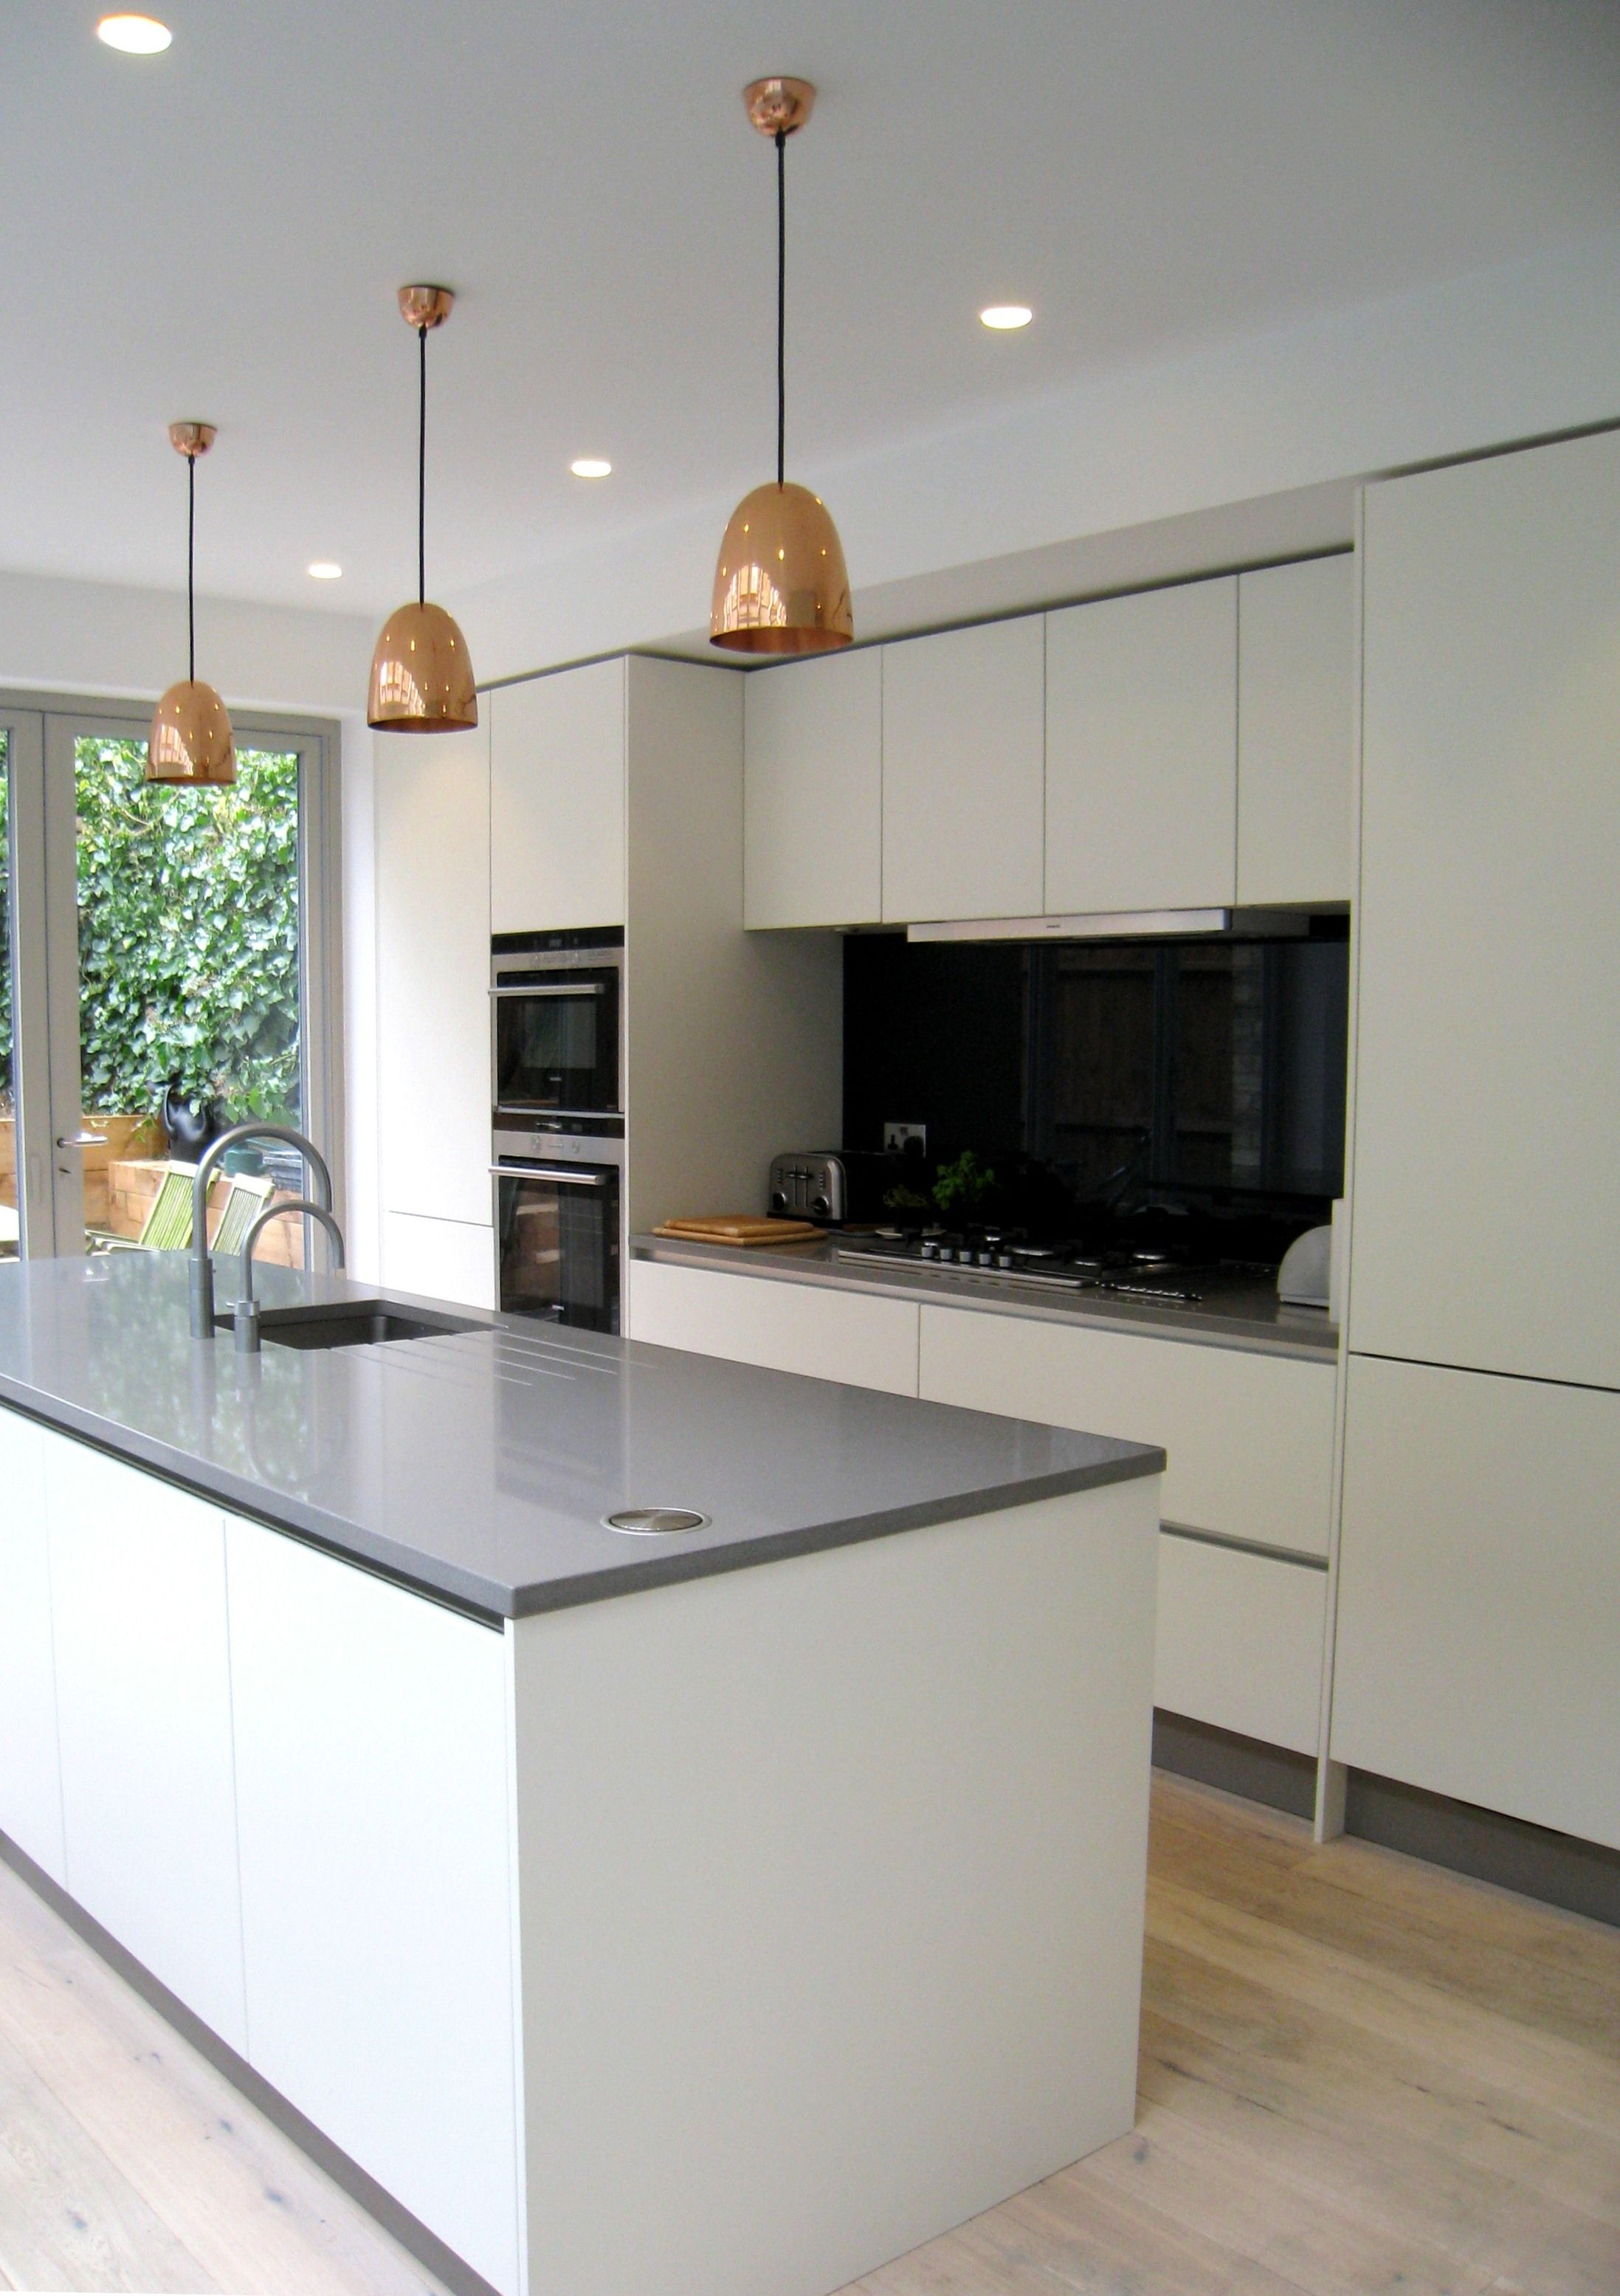 Best Simple Yet Stunning White Satin Lacquer Handless Kitchen 640 x 480